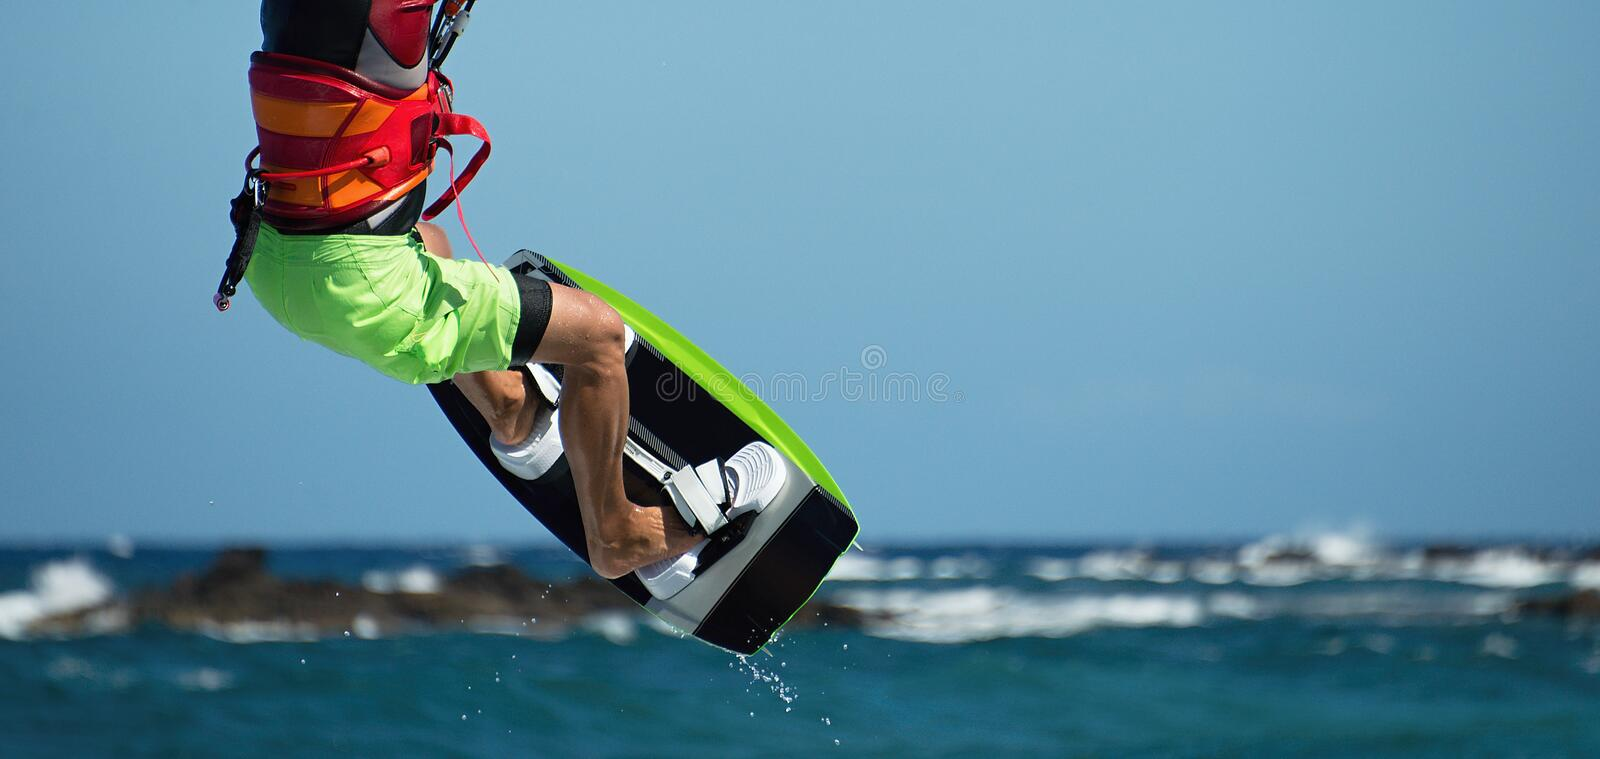 Kite surfer flying over the wave stock photography